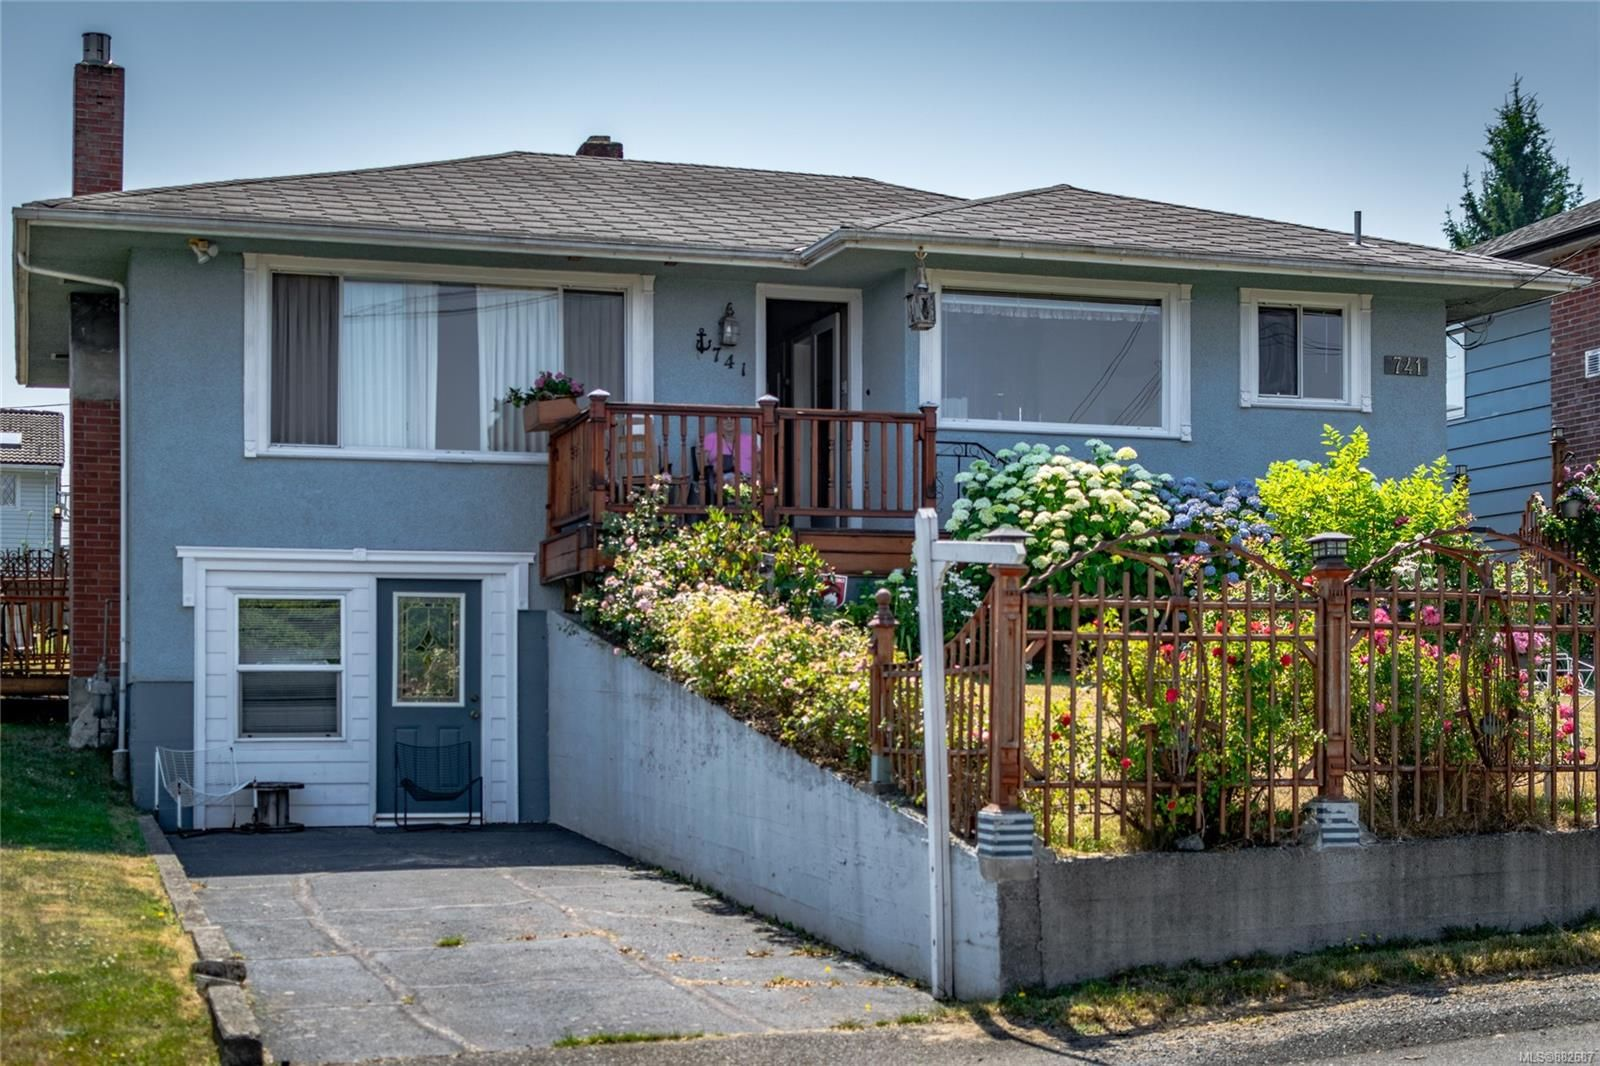 Main Photo: 741 Chestnut St in : Na Brechin Hill House for sale (Nanaimo)  : MLS®# 882687